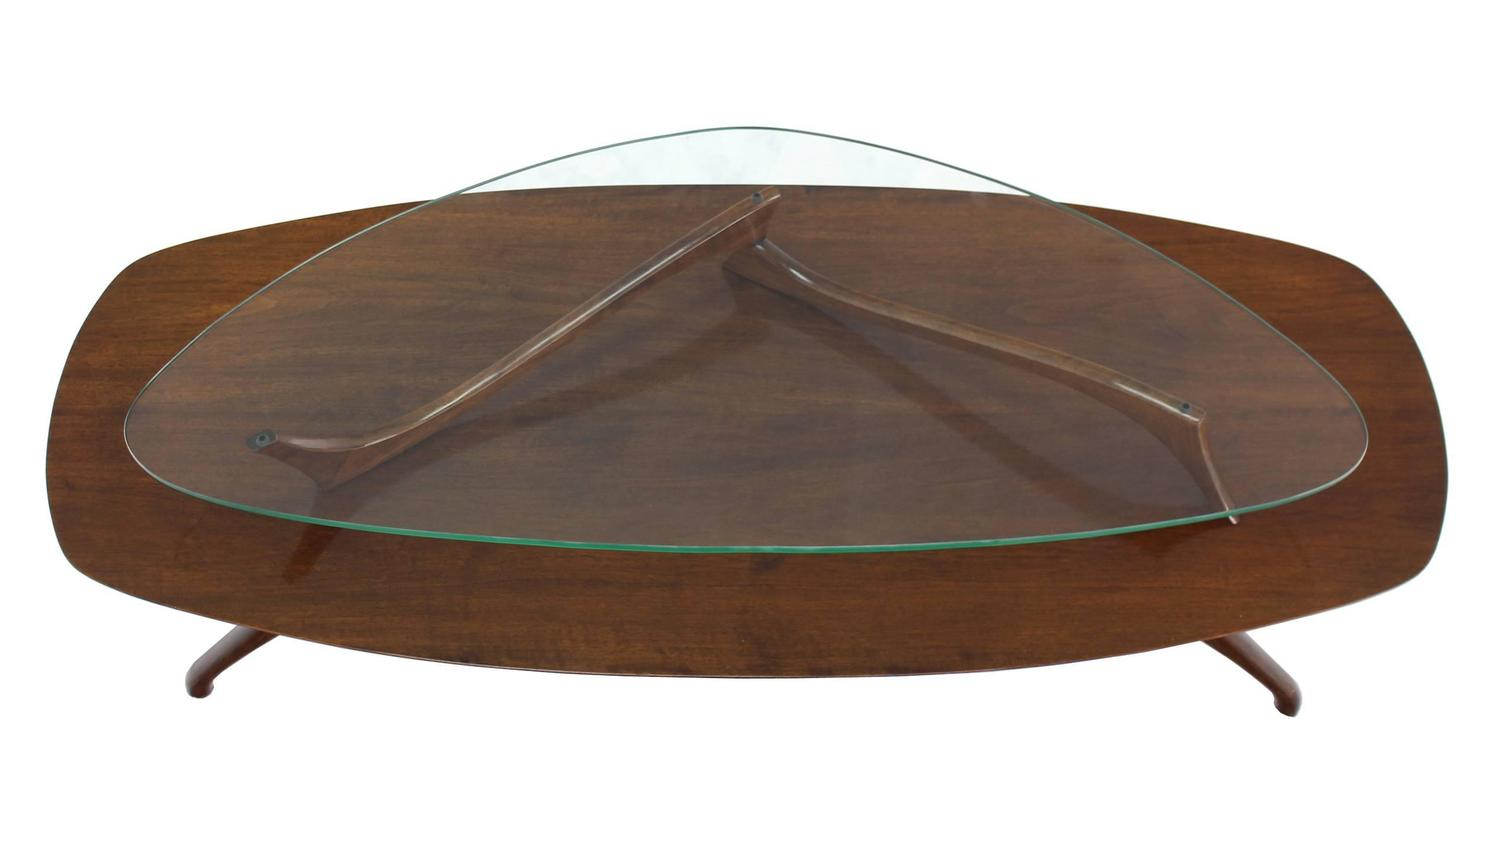 Walnut and glass two tier oval coffee table for sale at 1stdibs Glass oval coffee tables